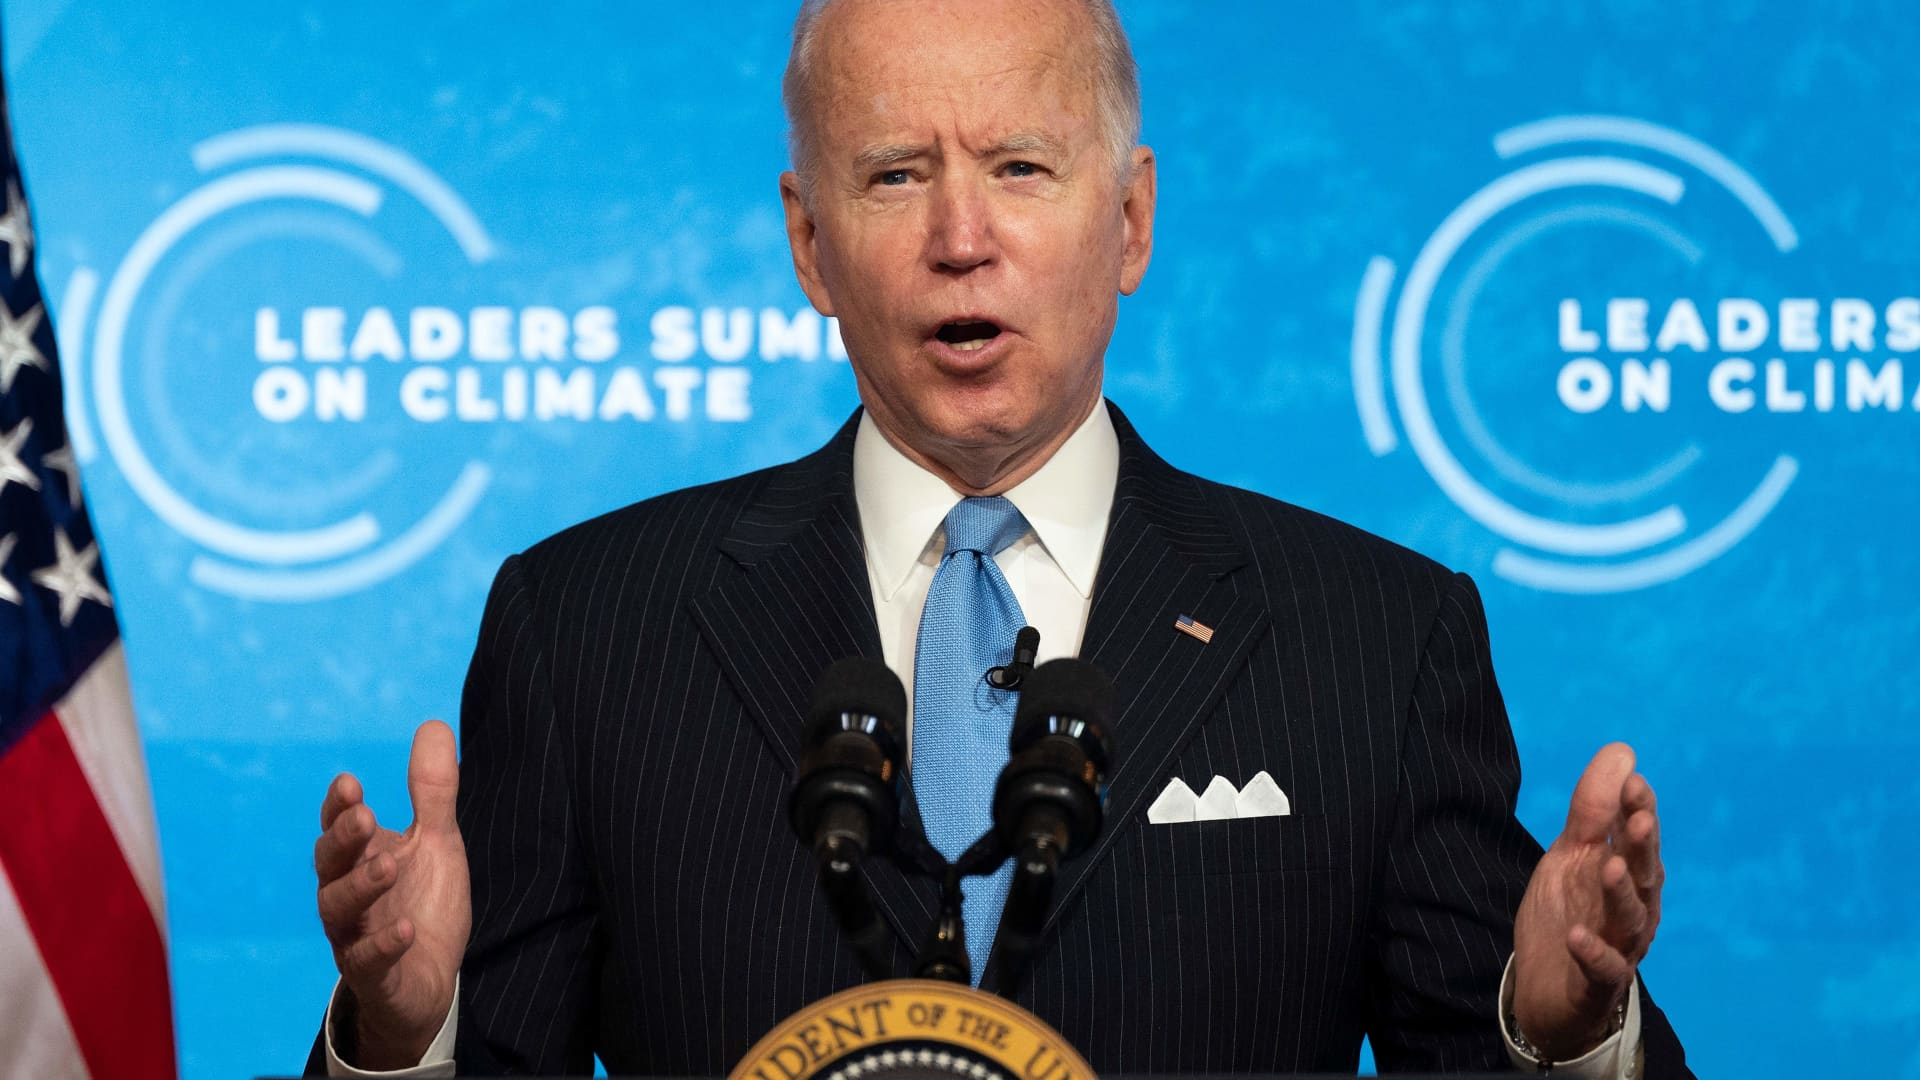 US President Joe Biden delivers remarks and participates in the virtual Leaders Summit on Climate Session 5: The Economic Opportunities of Climate Action from the White House in Washington, DC, on April 23, 2021.